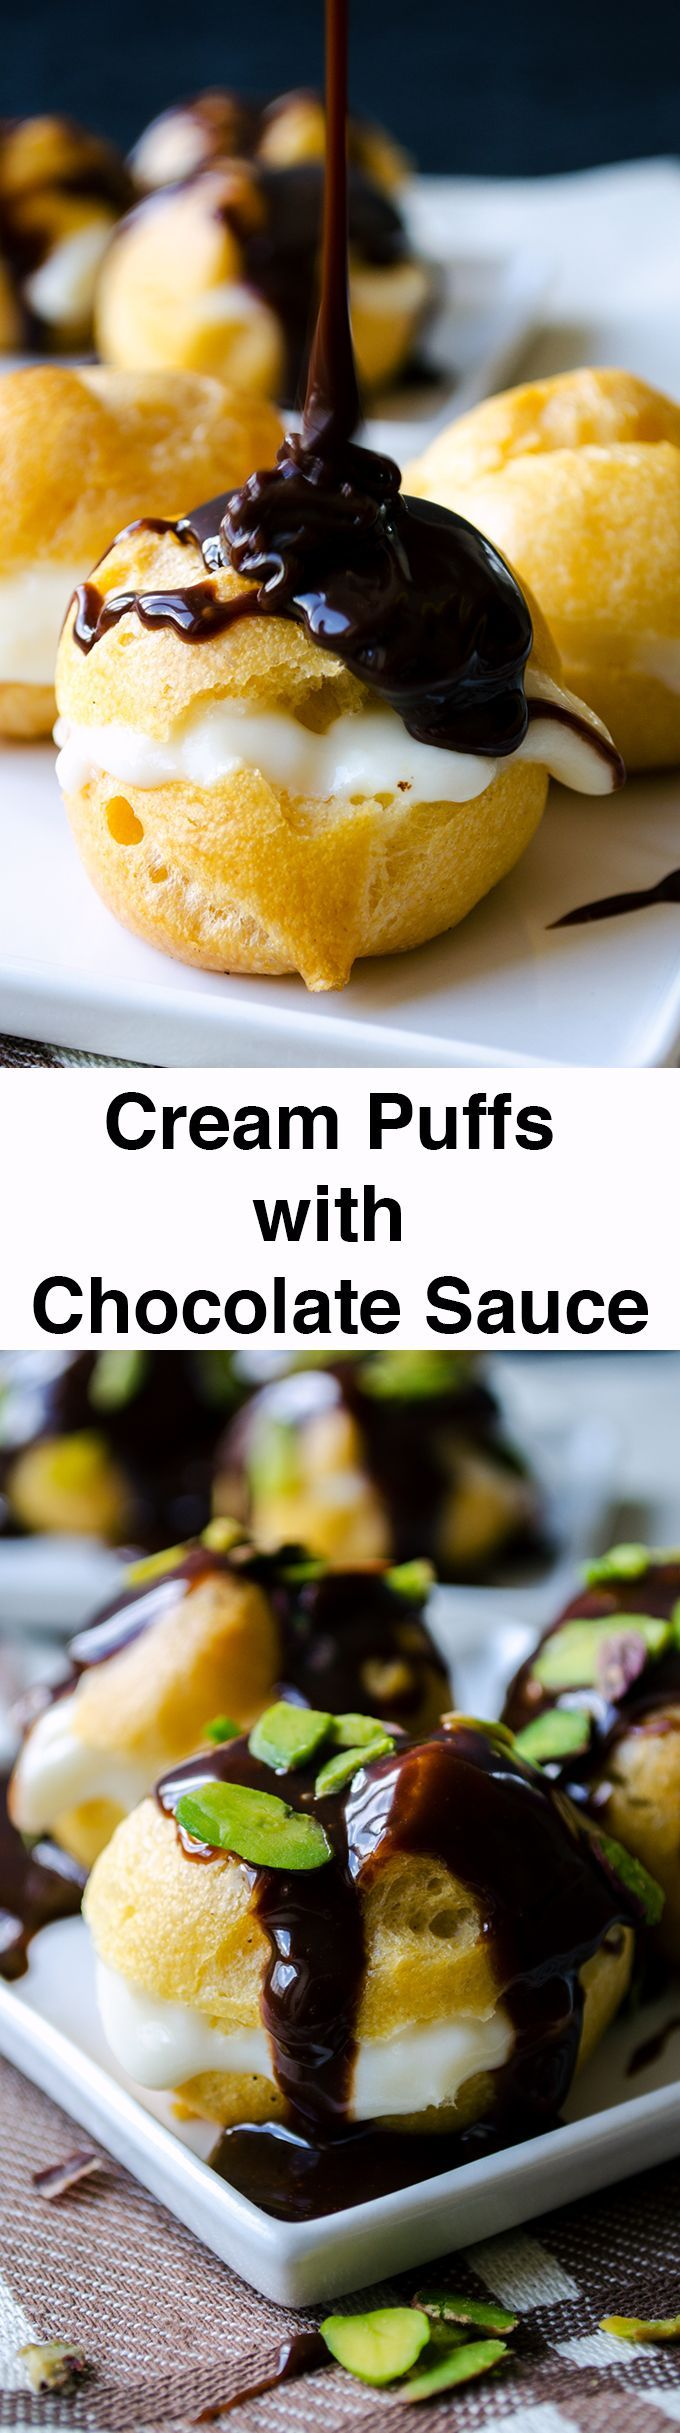 Cream puffs with chocolate sauce can be made at home. Regular custard filling is used in this recipe, but you can use different fillings too.